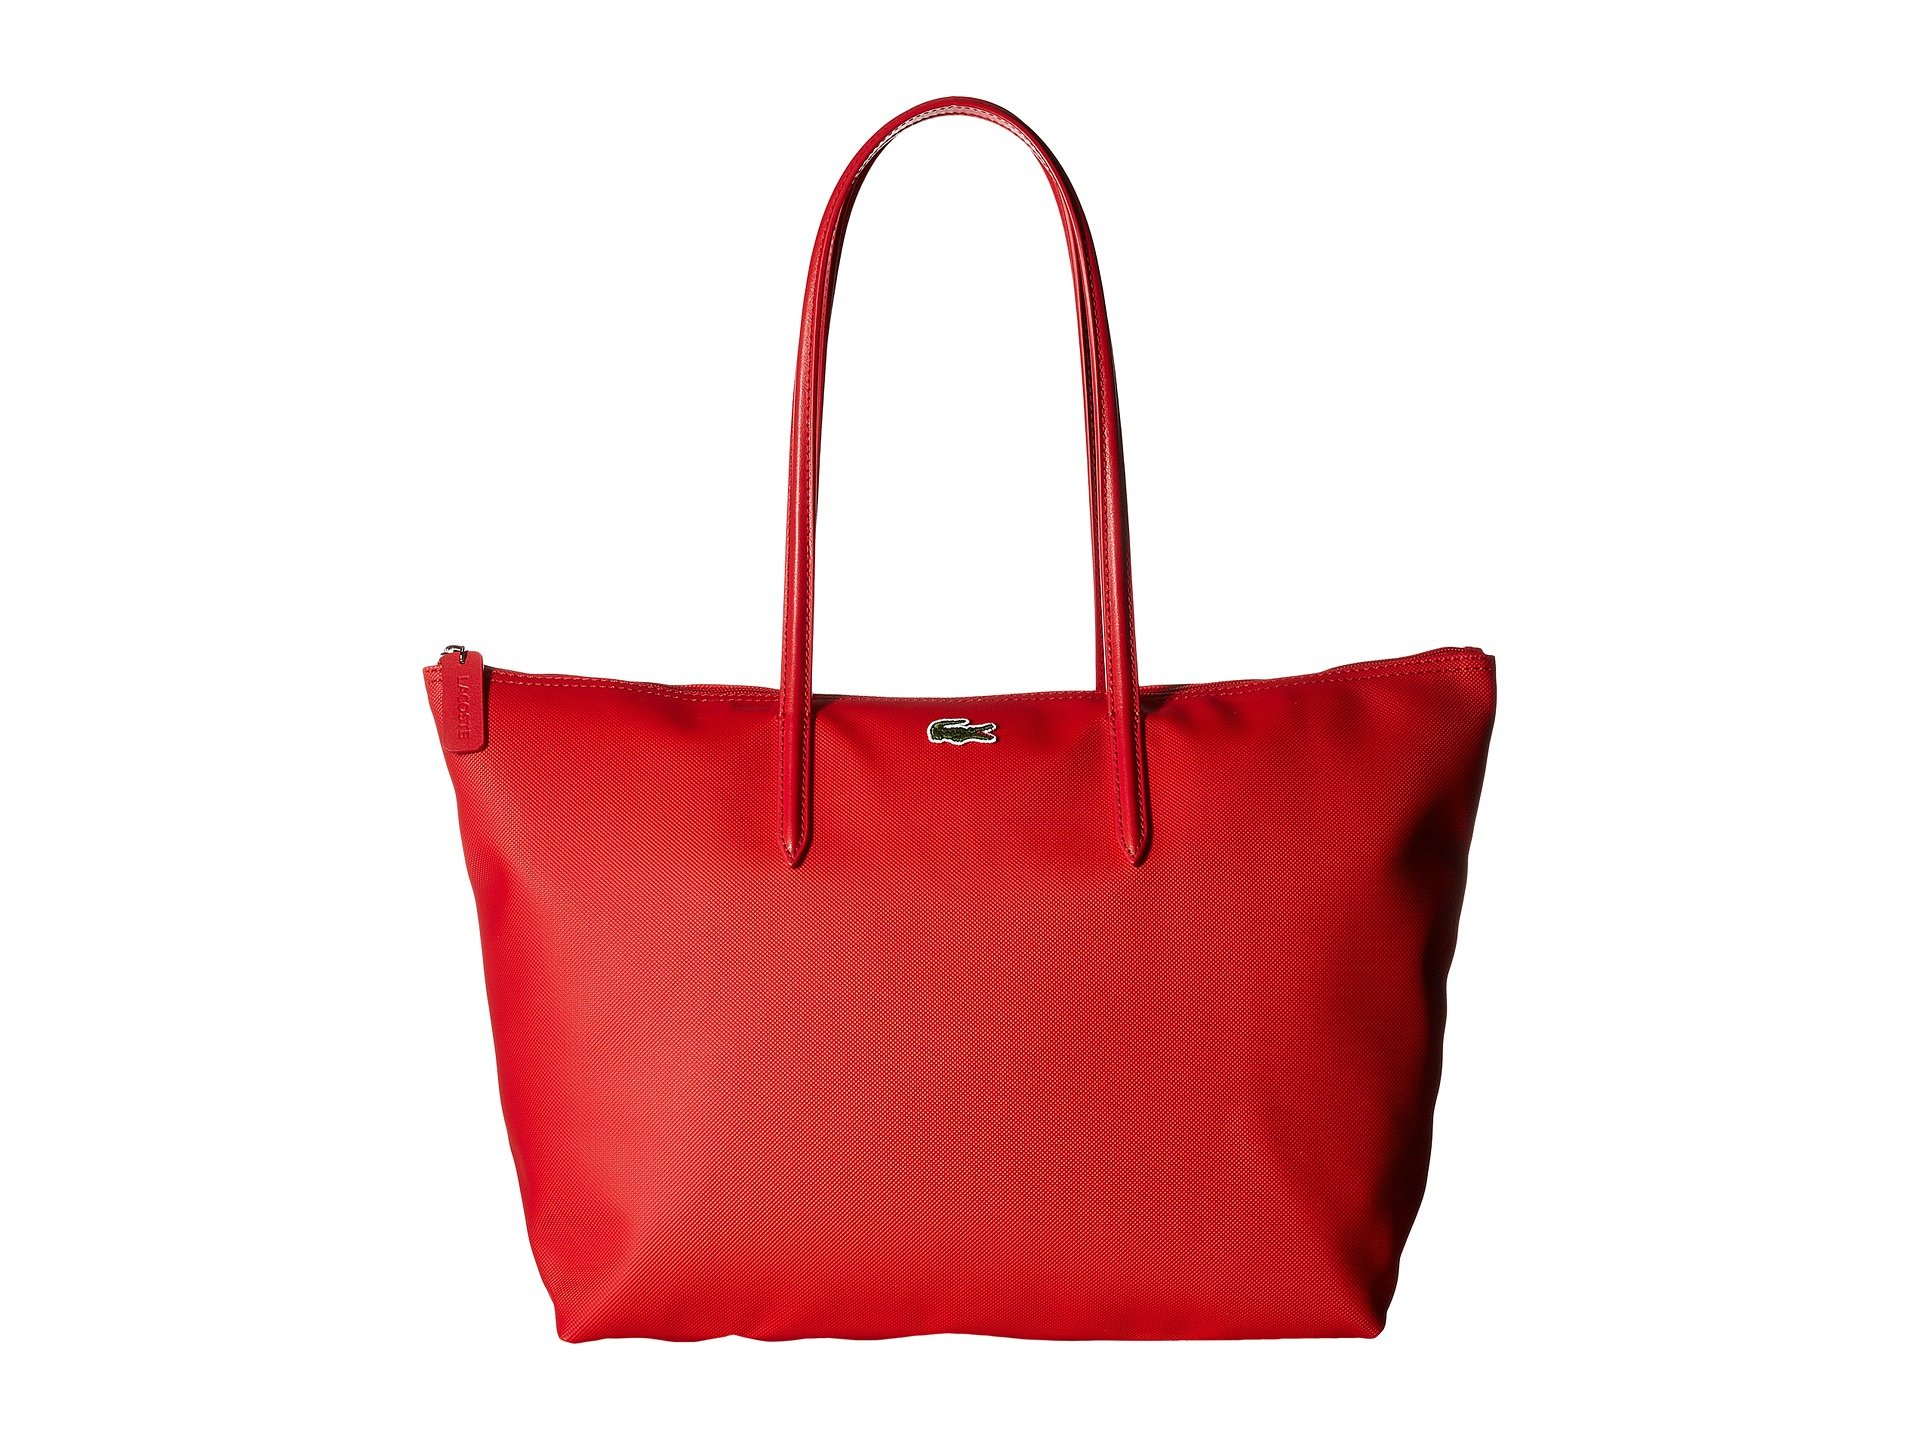 Bolso de Mano para Mujer Lacoste L.12.12 Concept Large Shopping Bag  + Lacoste en VeoyCompro.net